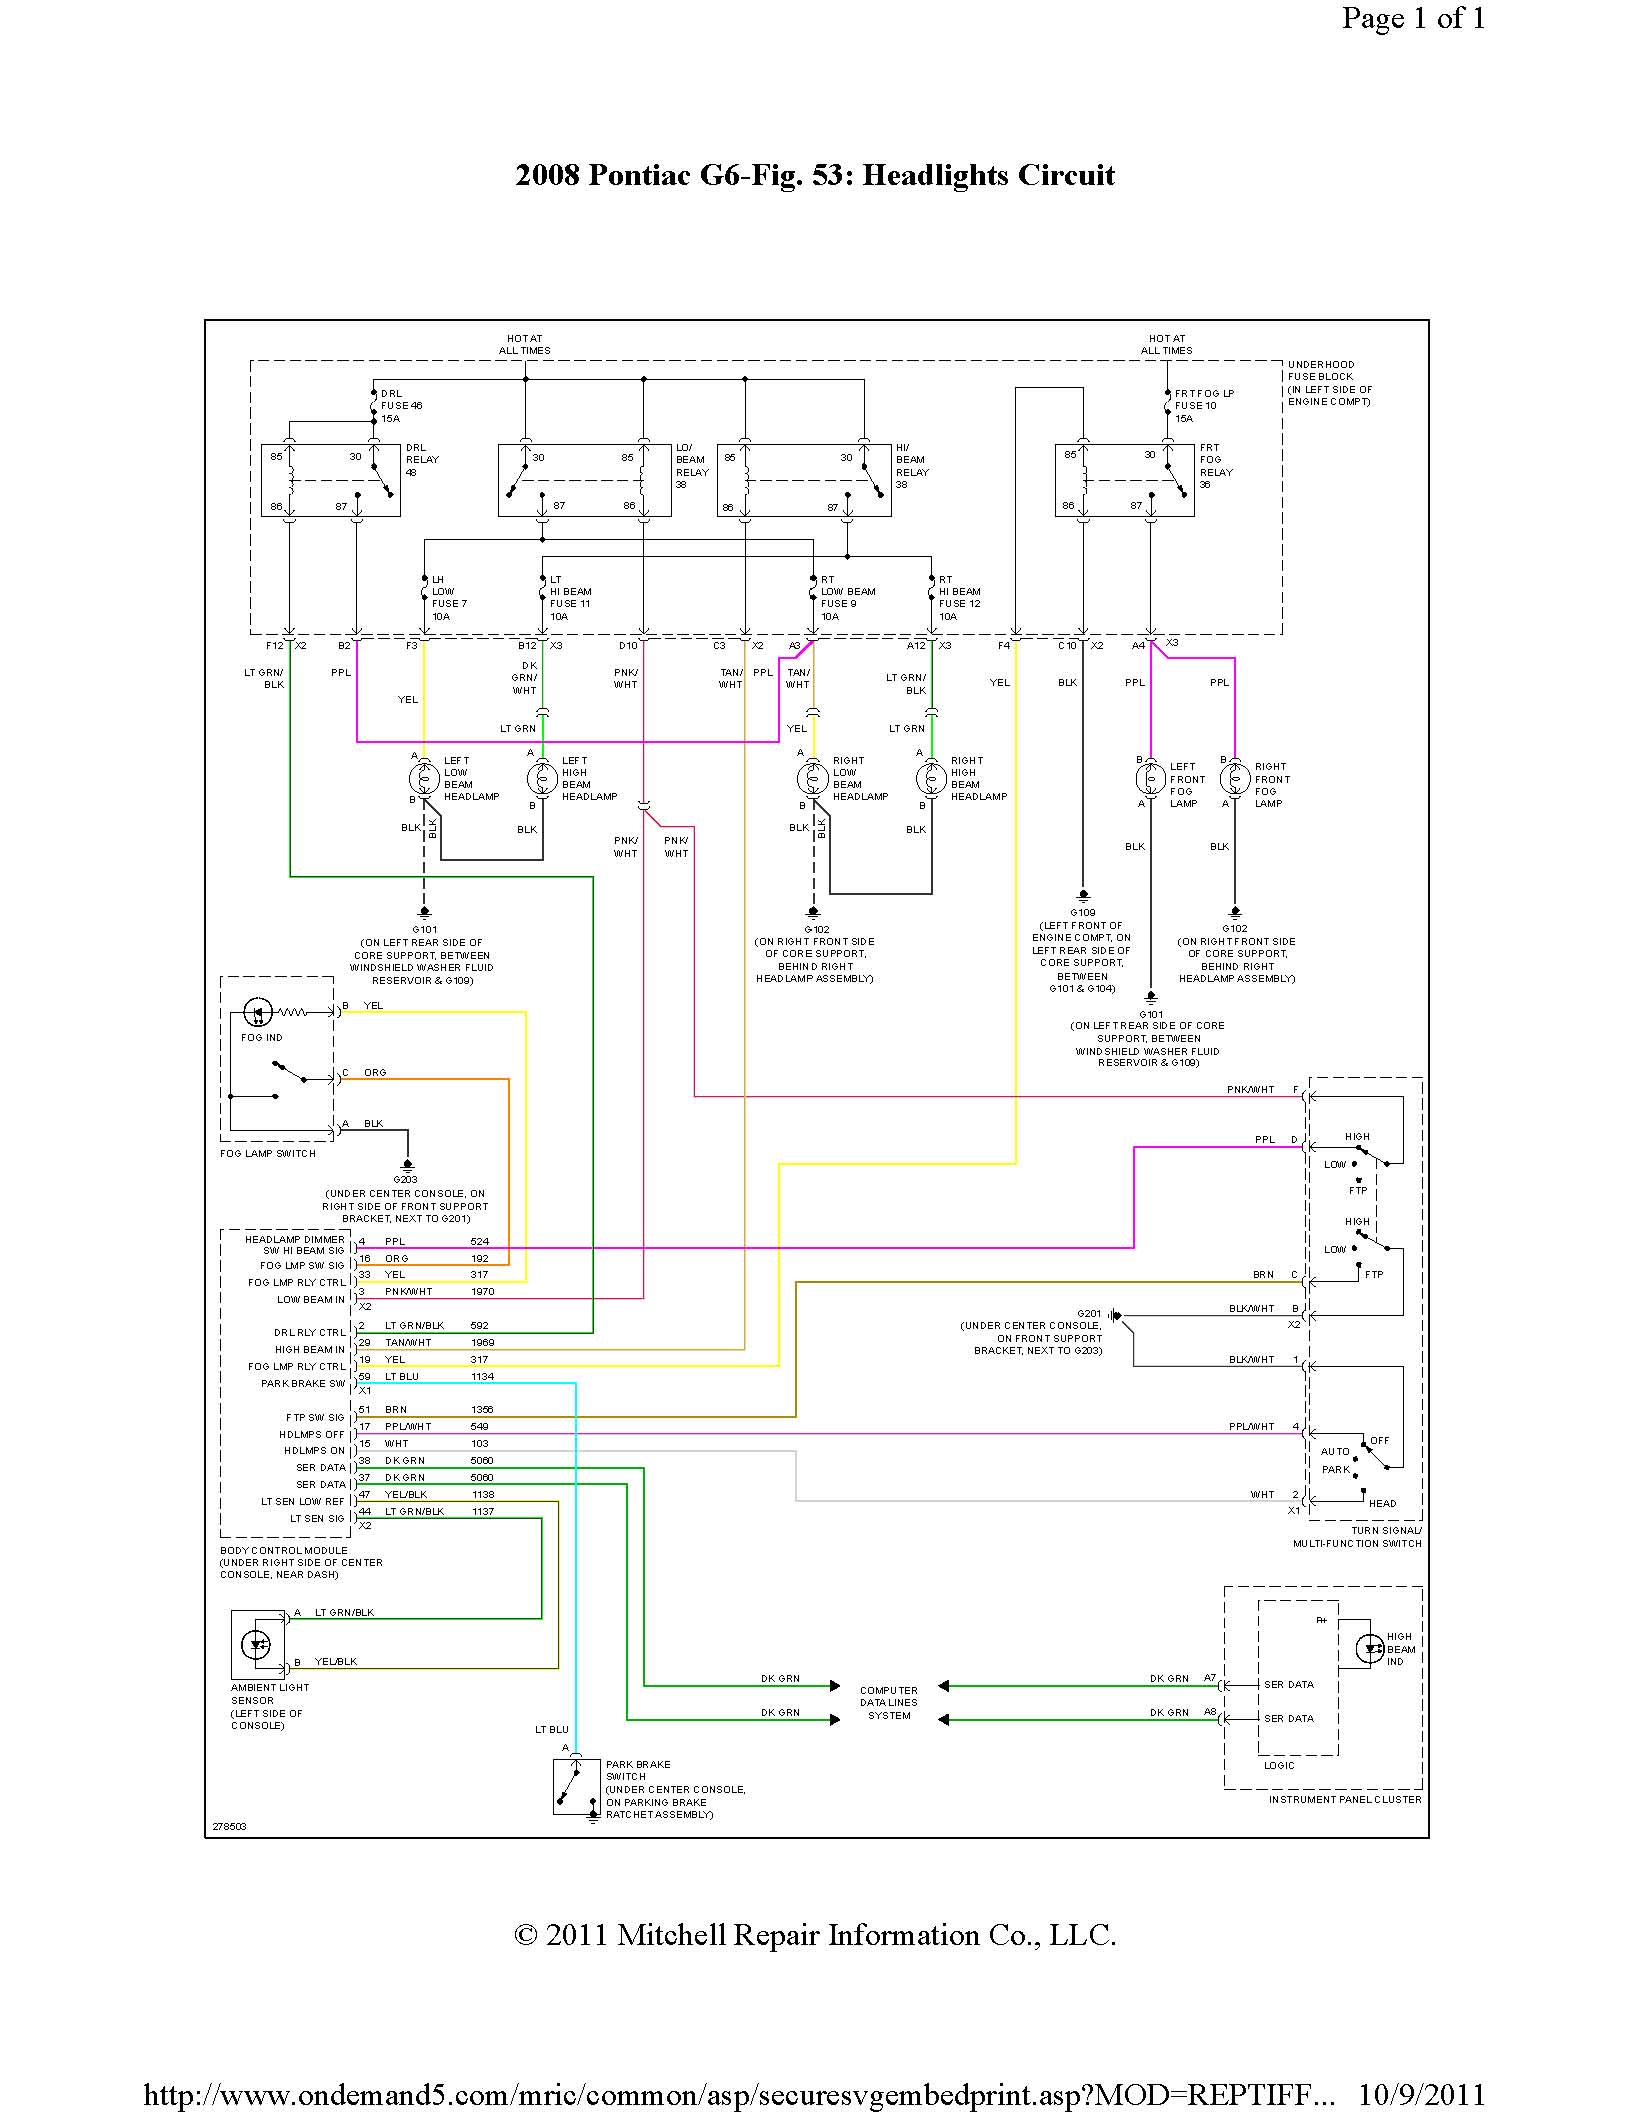 Groovy Basic Headlight Wiring Diagram Wiring Library Wiring Cloud Mousmenurrecoveryedborg